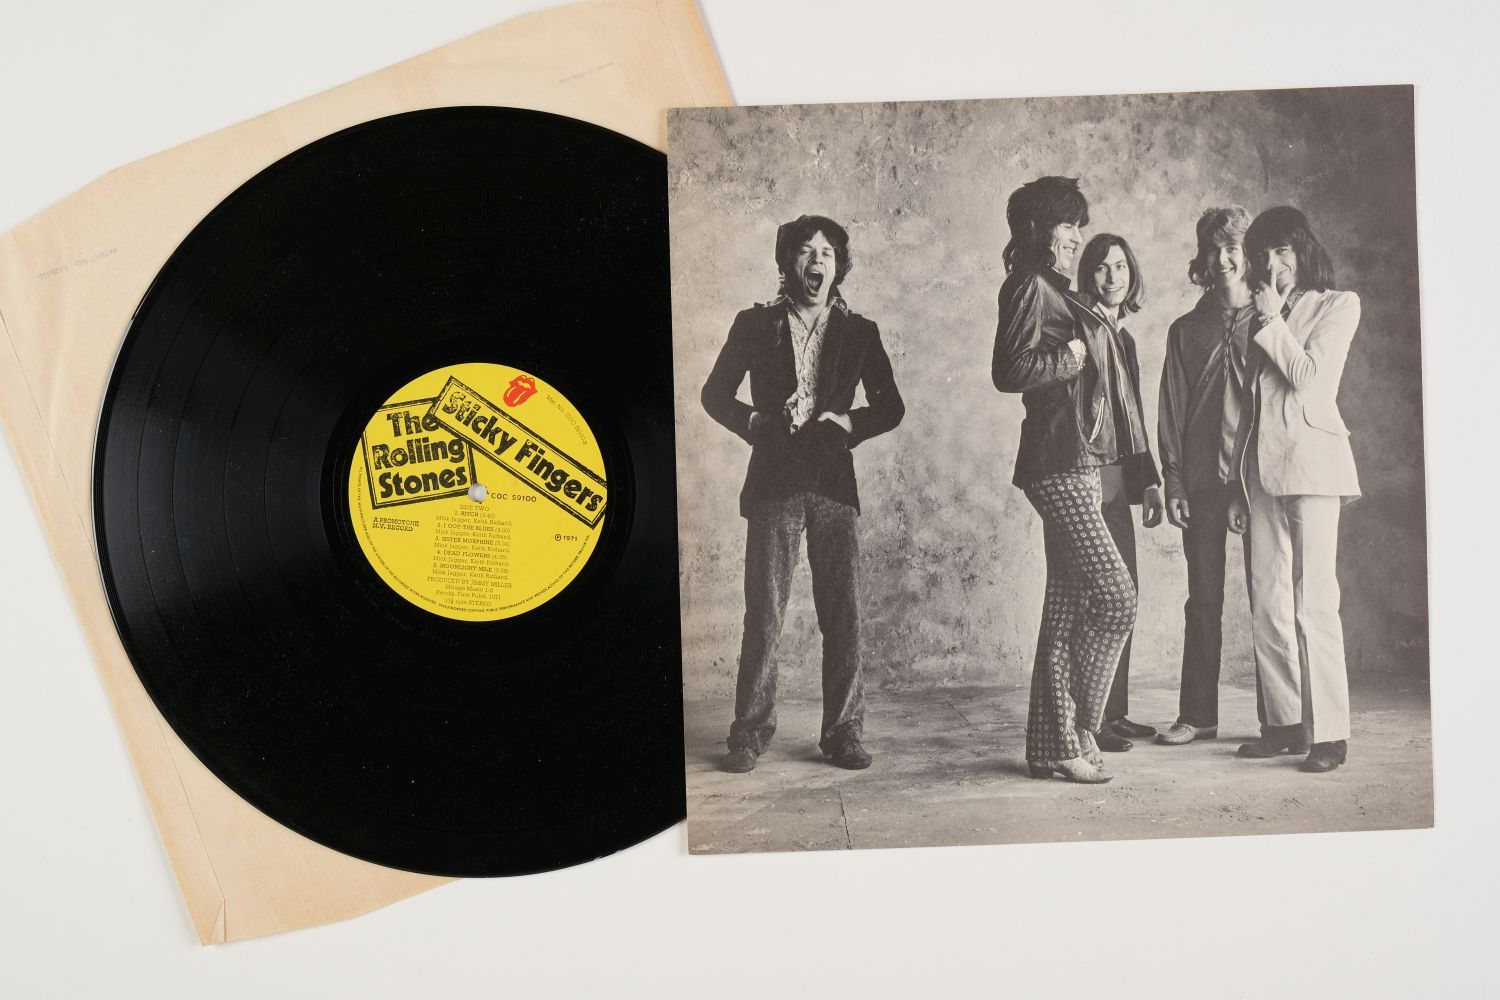 * The Rolling Stones. Collection of early Rolling Stones records / LPs - Image 5 of 10